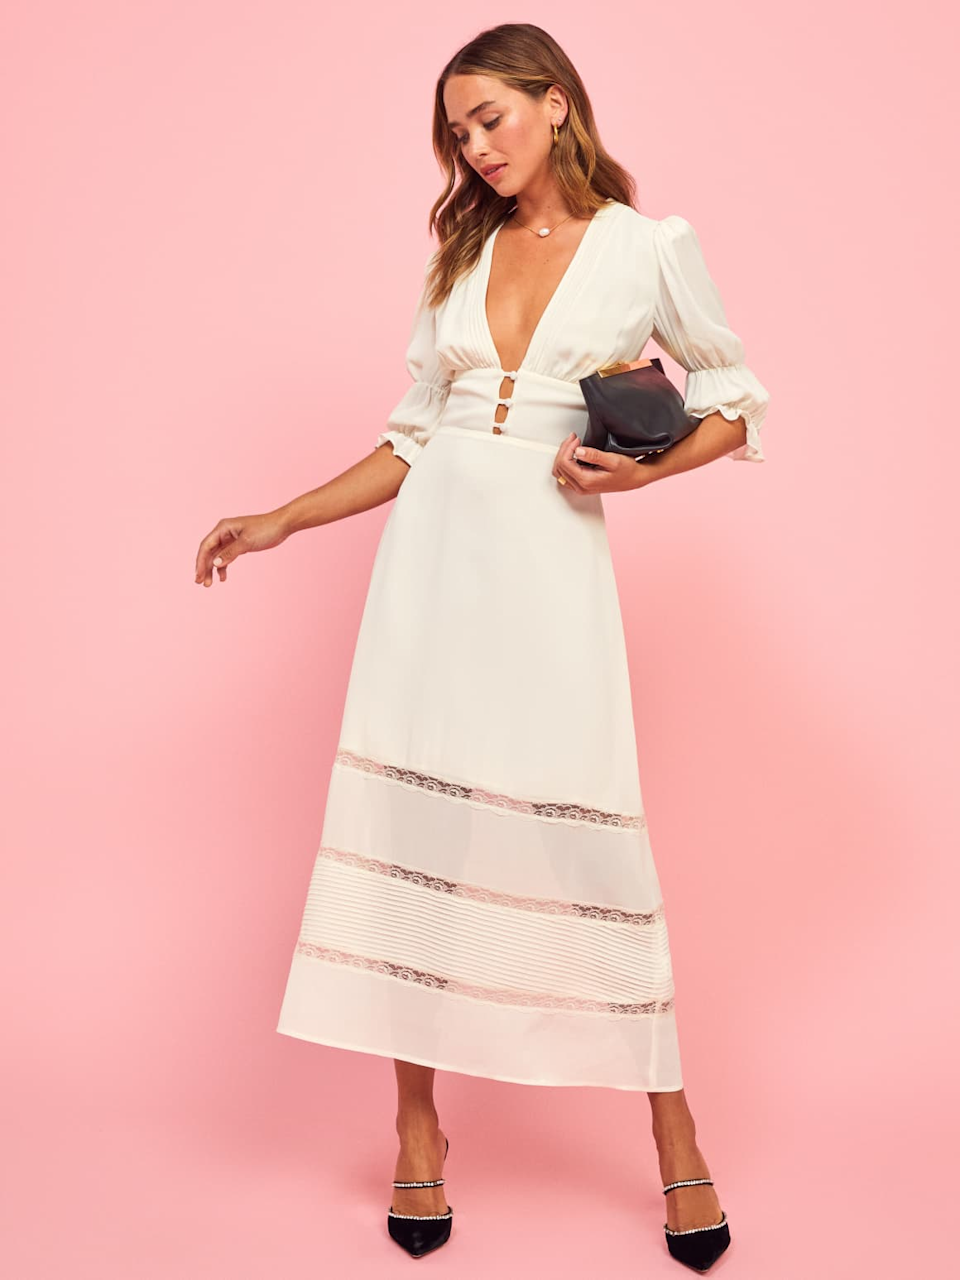 """<h2><a href=""""https://www.thereformation.com/categories/brides"""" rel=""""nofollow noopener"""" target=""""_blank"""" data-ylk=""""slk:Reformation"""" class=""""link rapid-noclick-resp"""">Reformation</a></h2><br>For those looking for a sustainable wedding dress, Reformation also designs bridal looks. The styles lean more boho, and feature the same low-cut, high-slit styles that we've come to expect from the popular brand.<br>"""